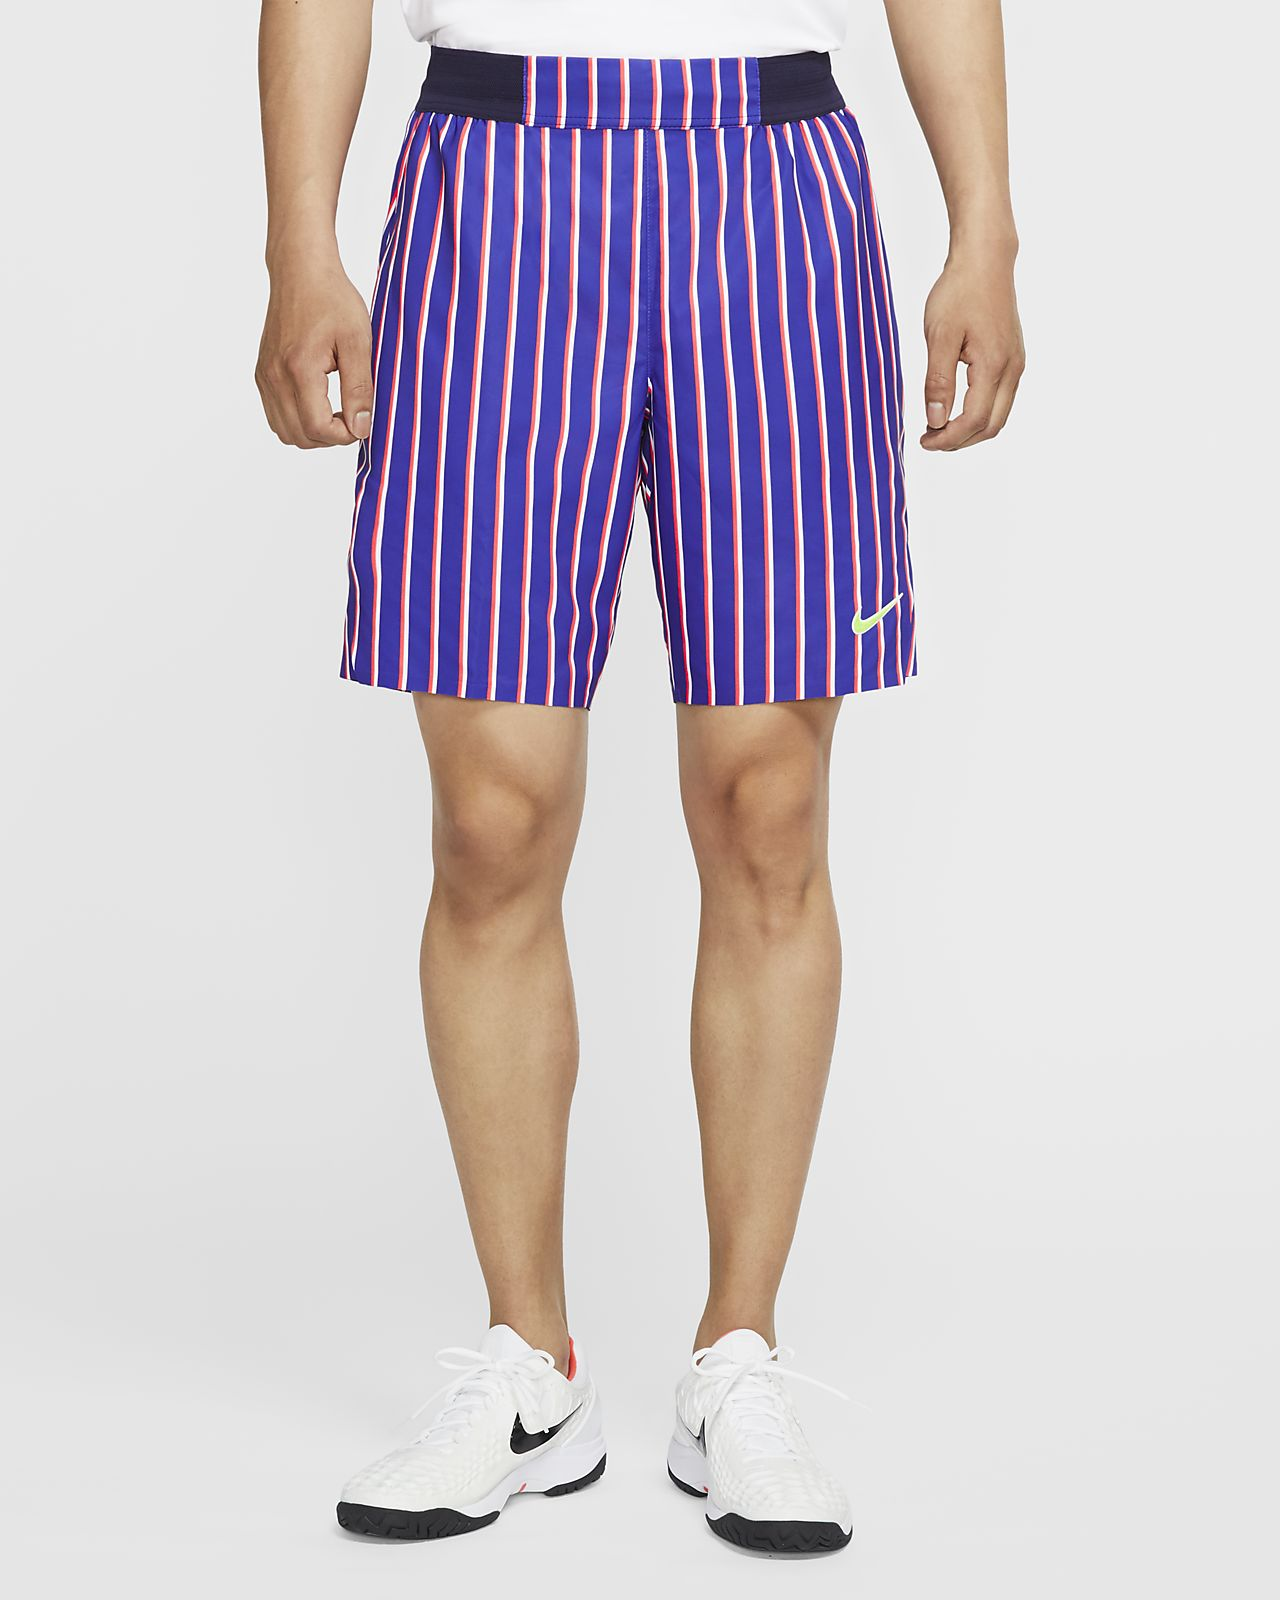 NikeCourt Slam Men's Tennis Shorts